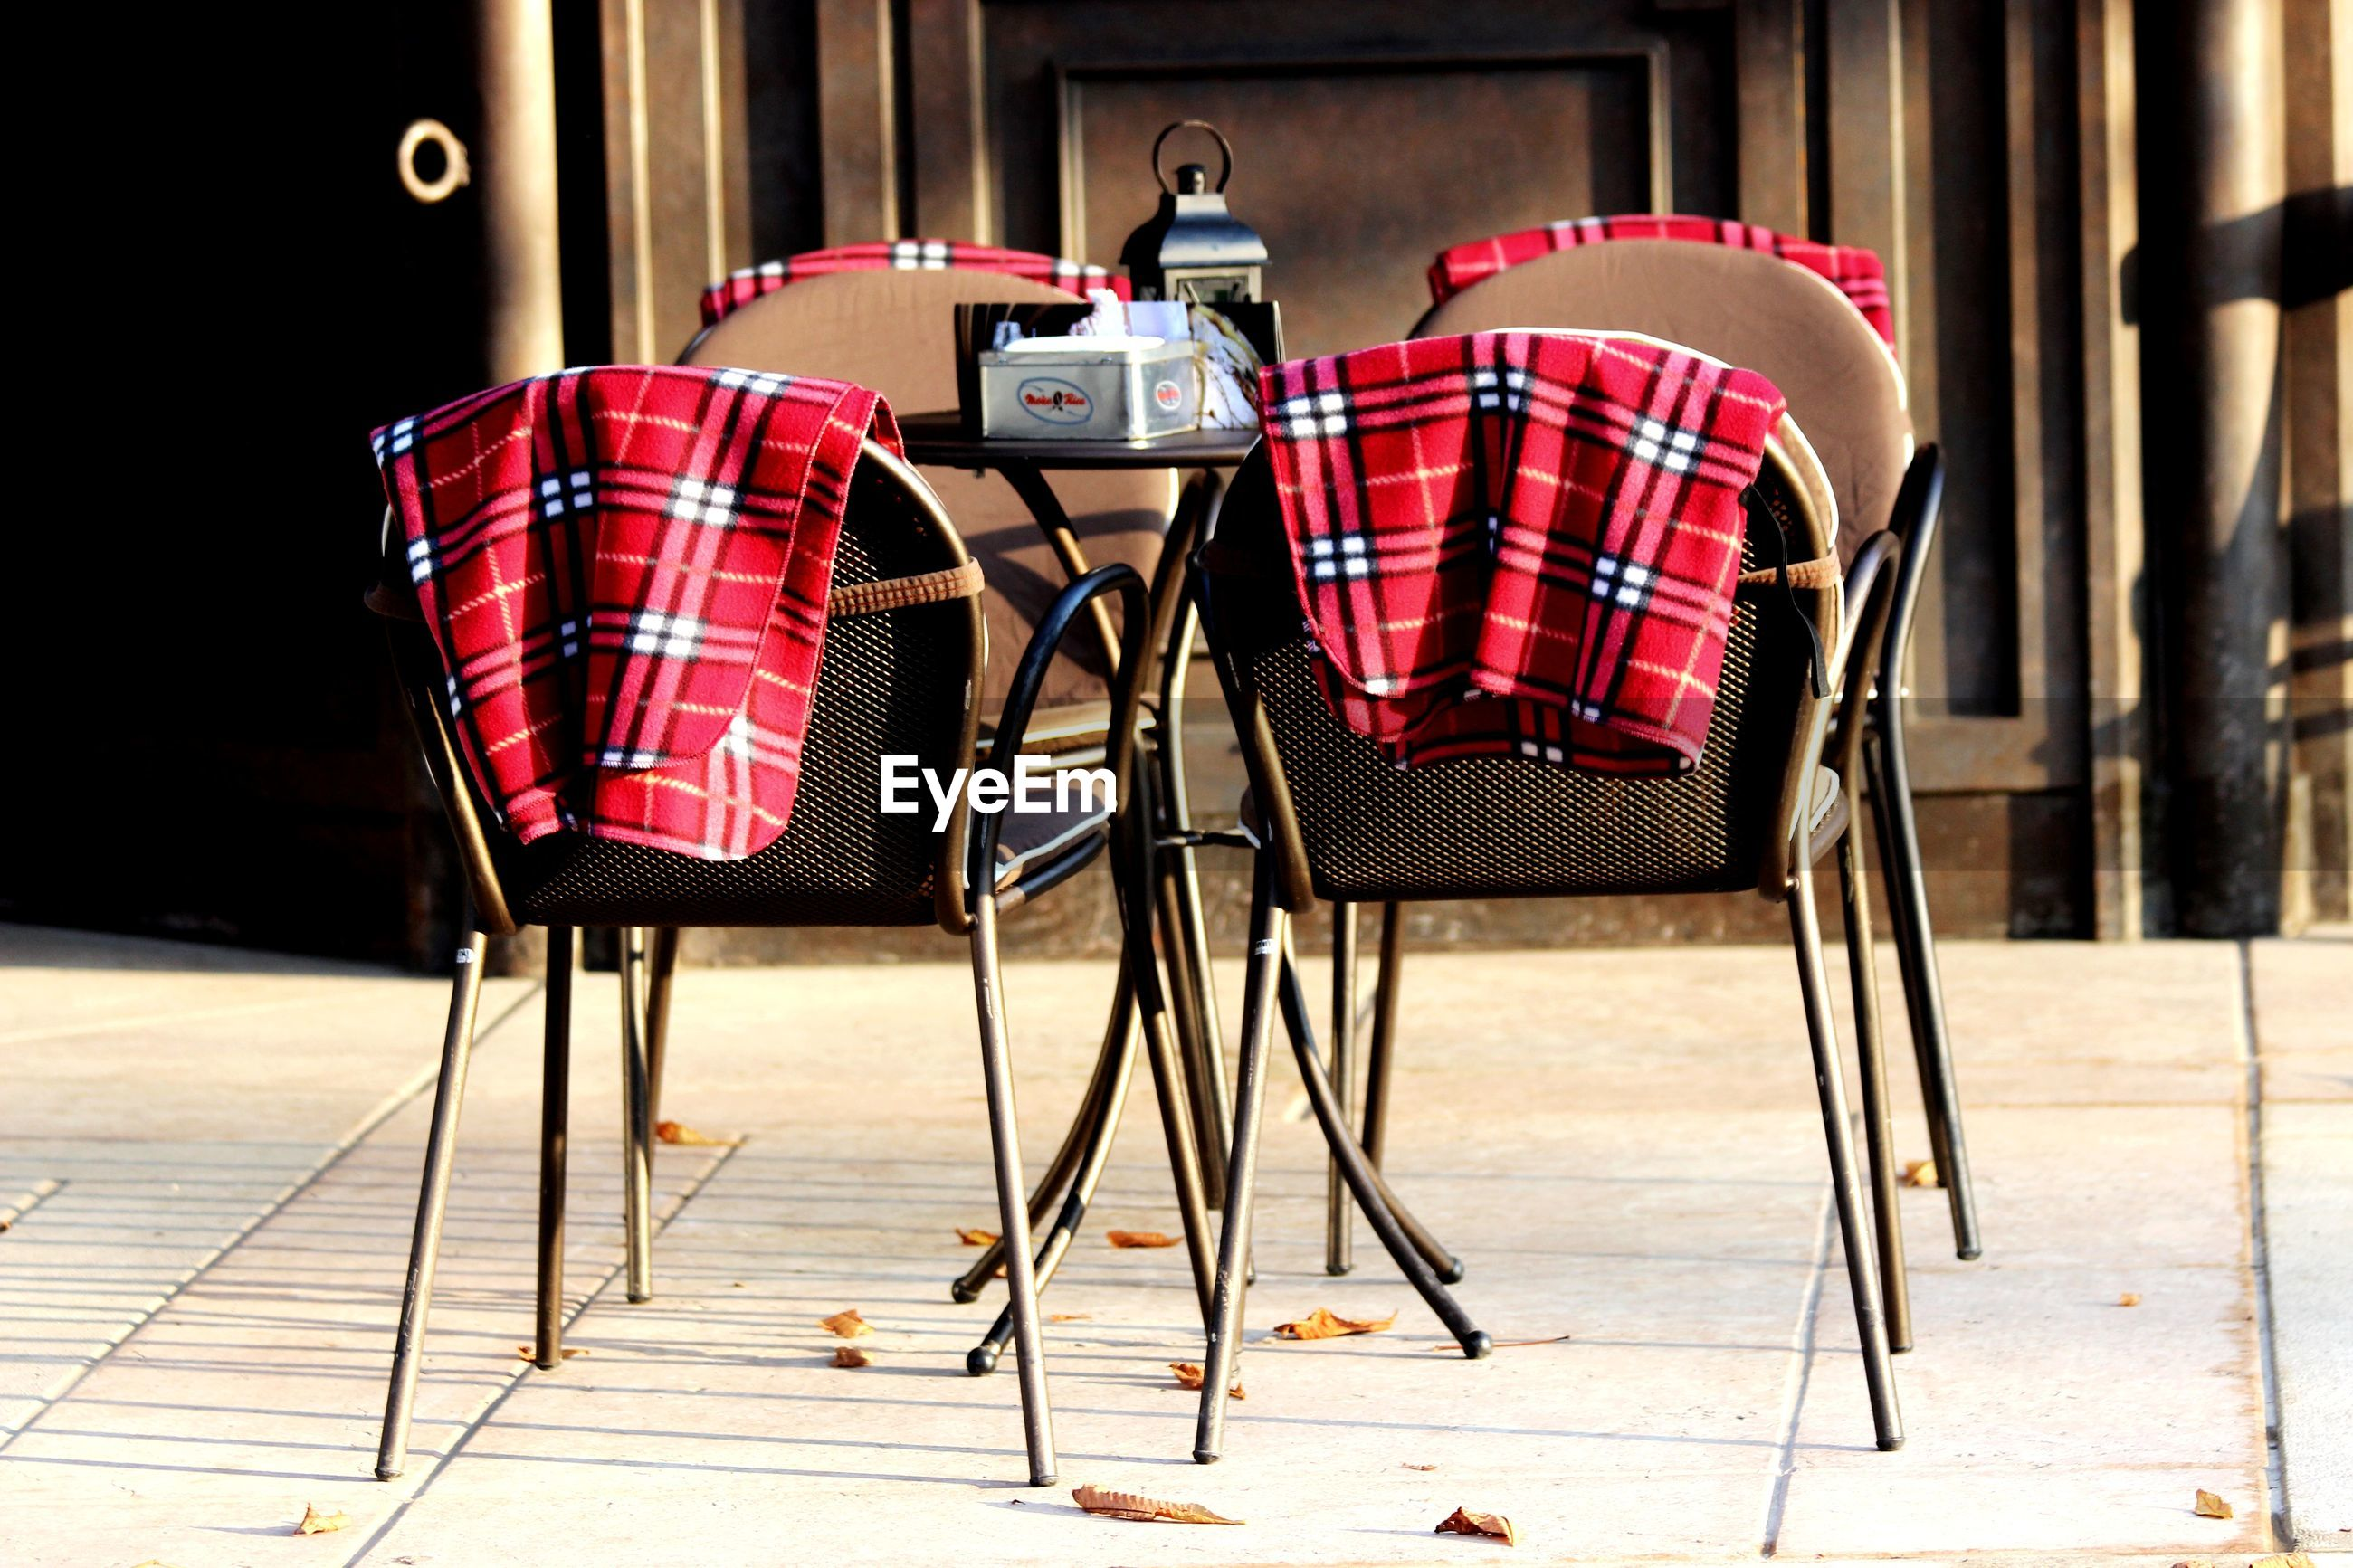 EMPTY CHAIRS AND TABLE IN CAFE AGAINST BUILDING